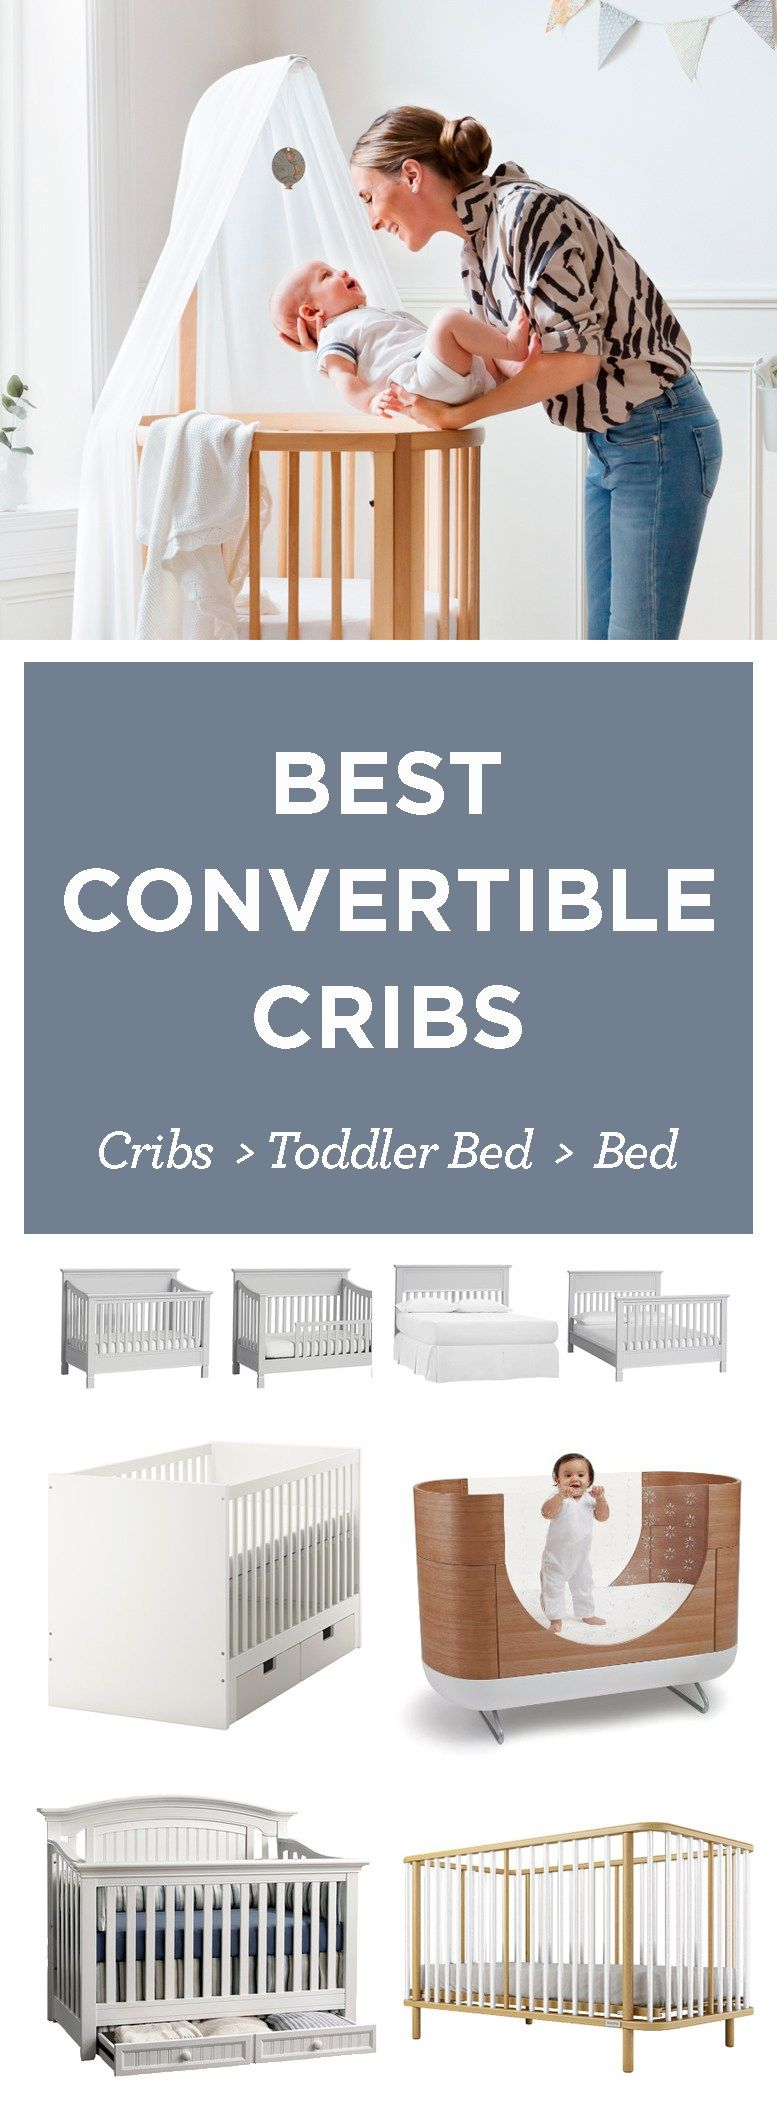 Baby cribs dundas - The Best Convertible Baby Cribs That Convert To Toddler Beds So You Get Years Of Use